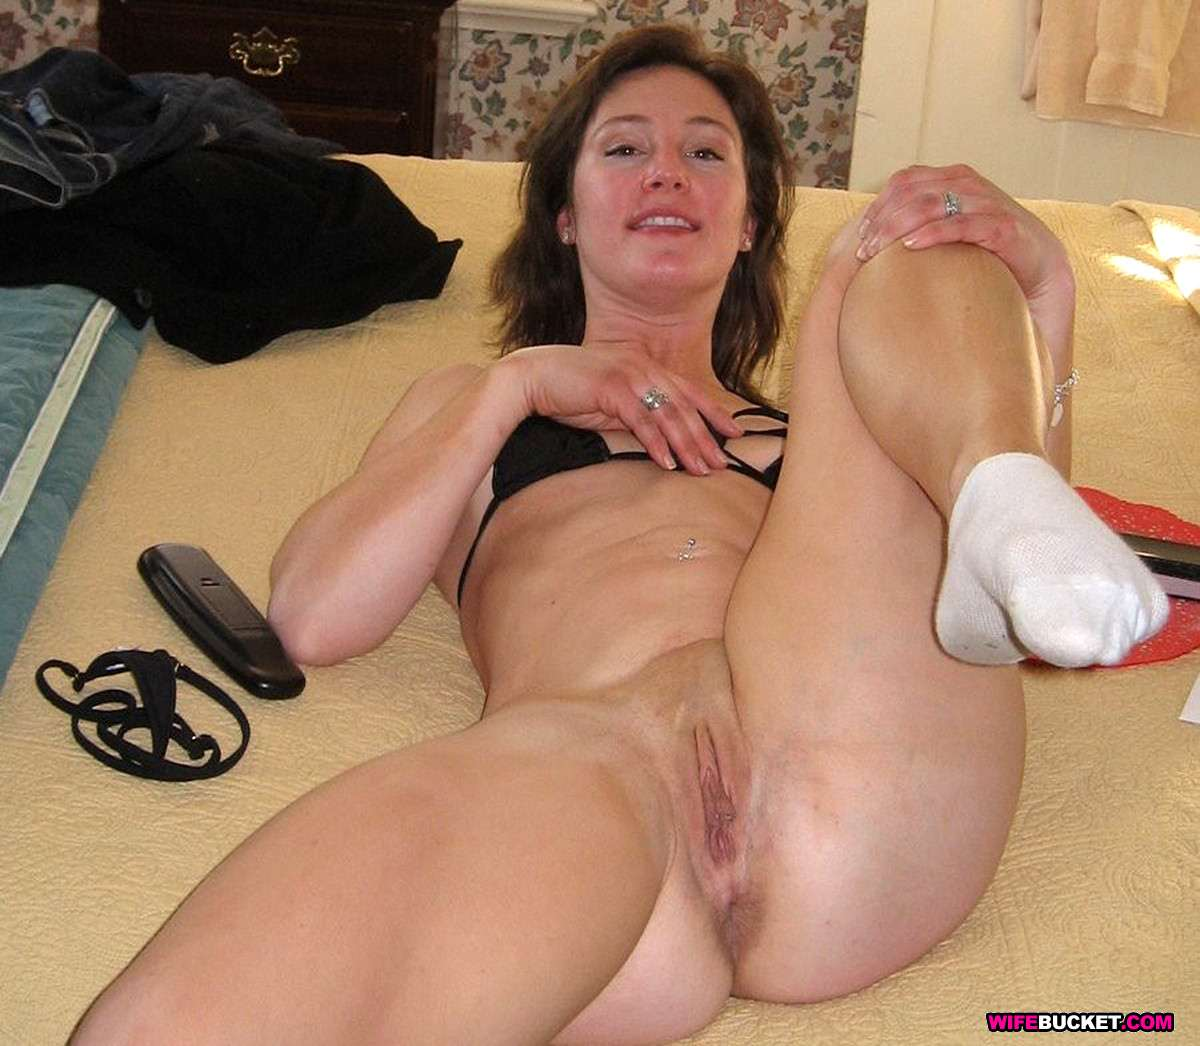 Wife Bucket - Naked Wives, Home Porn, Amateur Swingers -5350